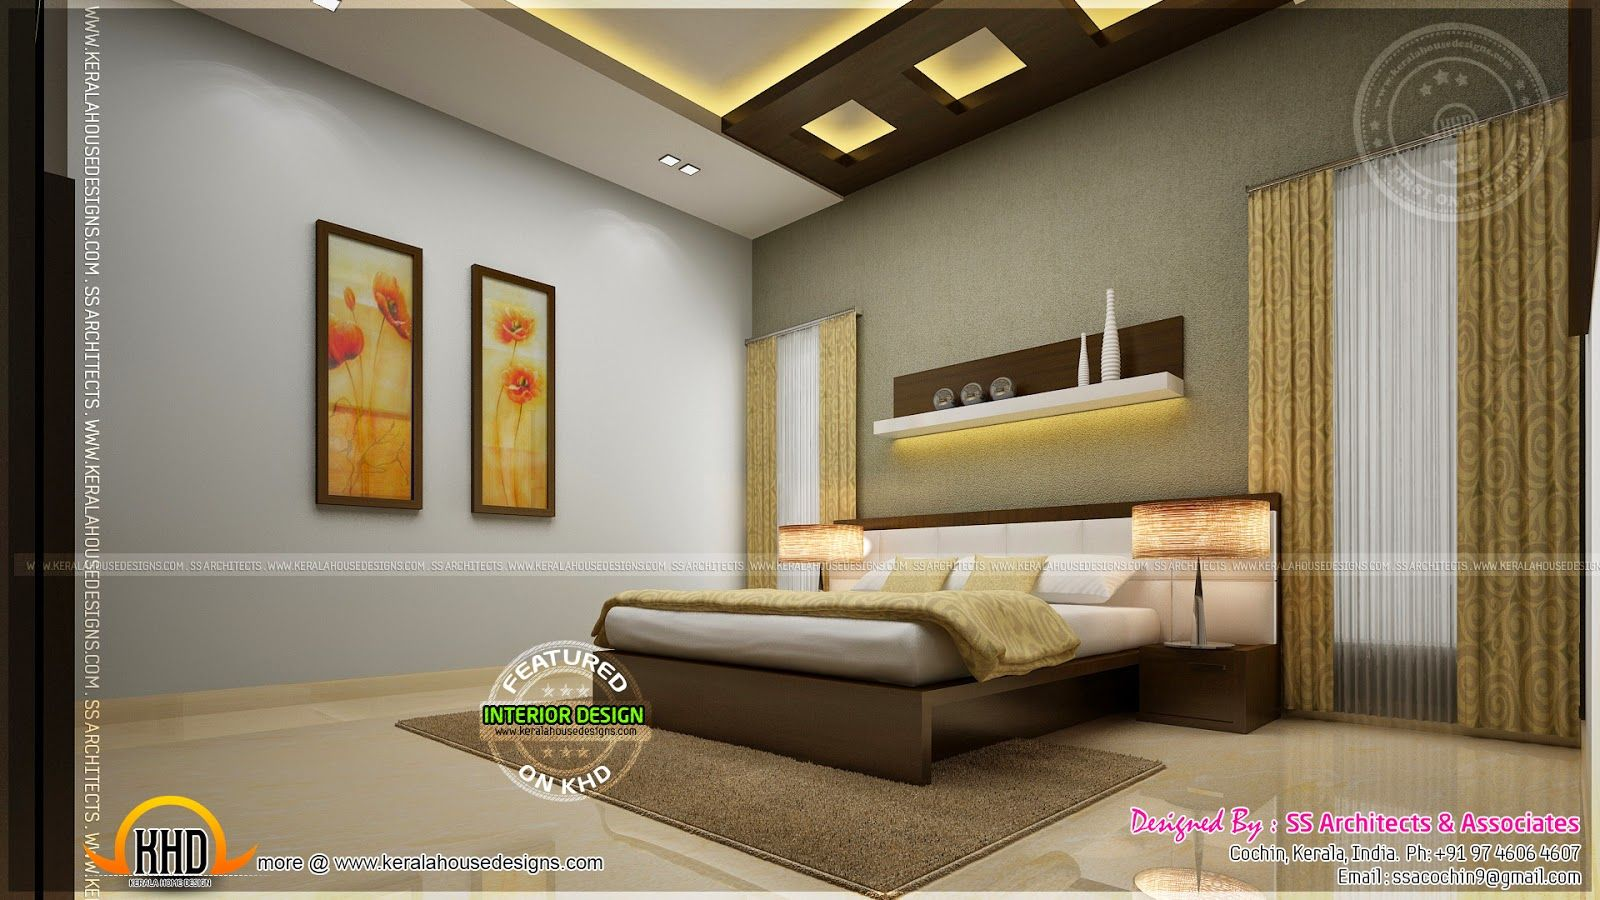 Indian master bedroom interior design google search for Master bedroom wardrobe designs india